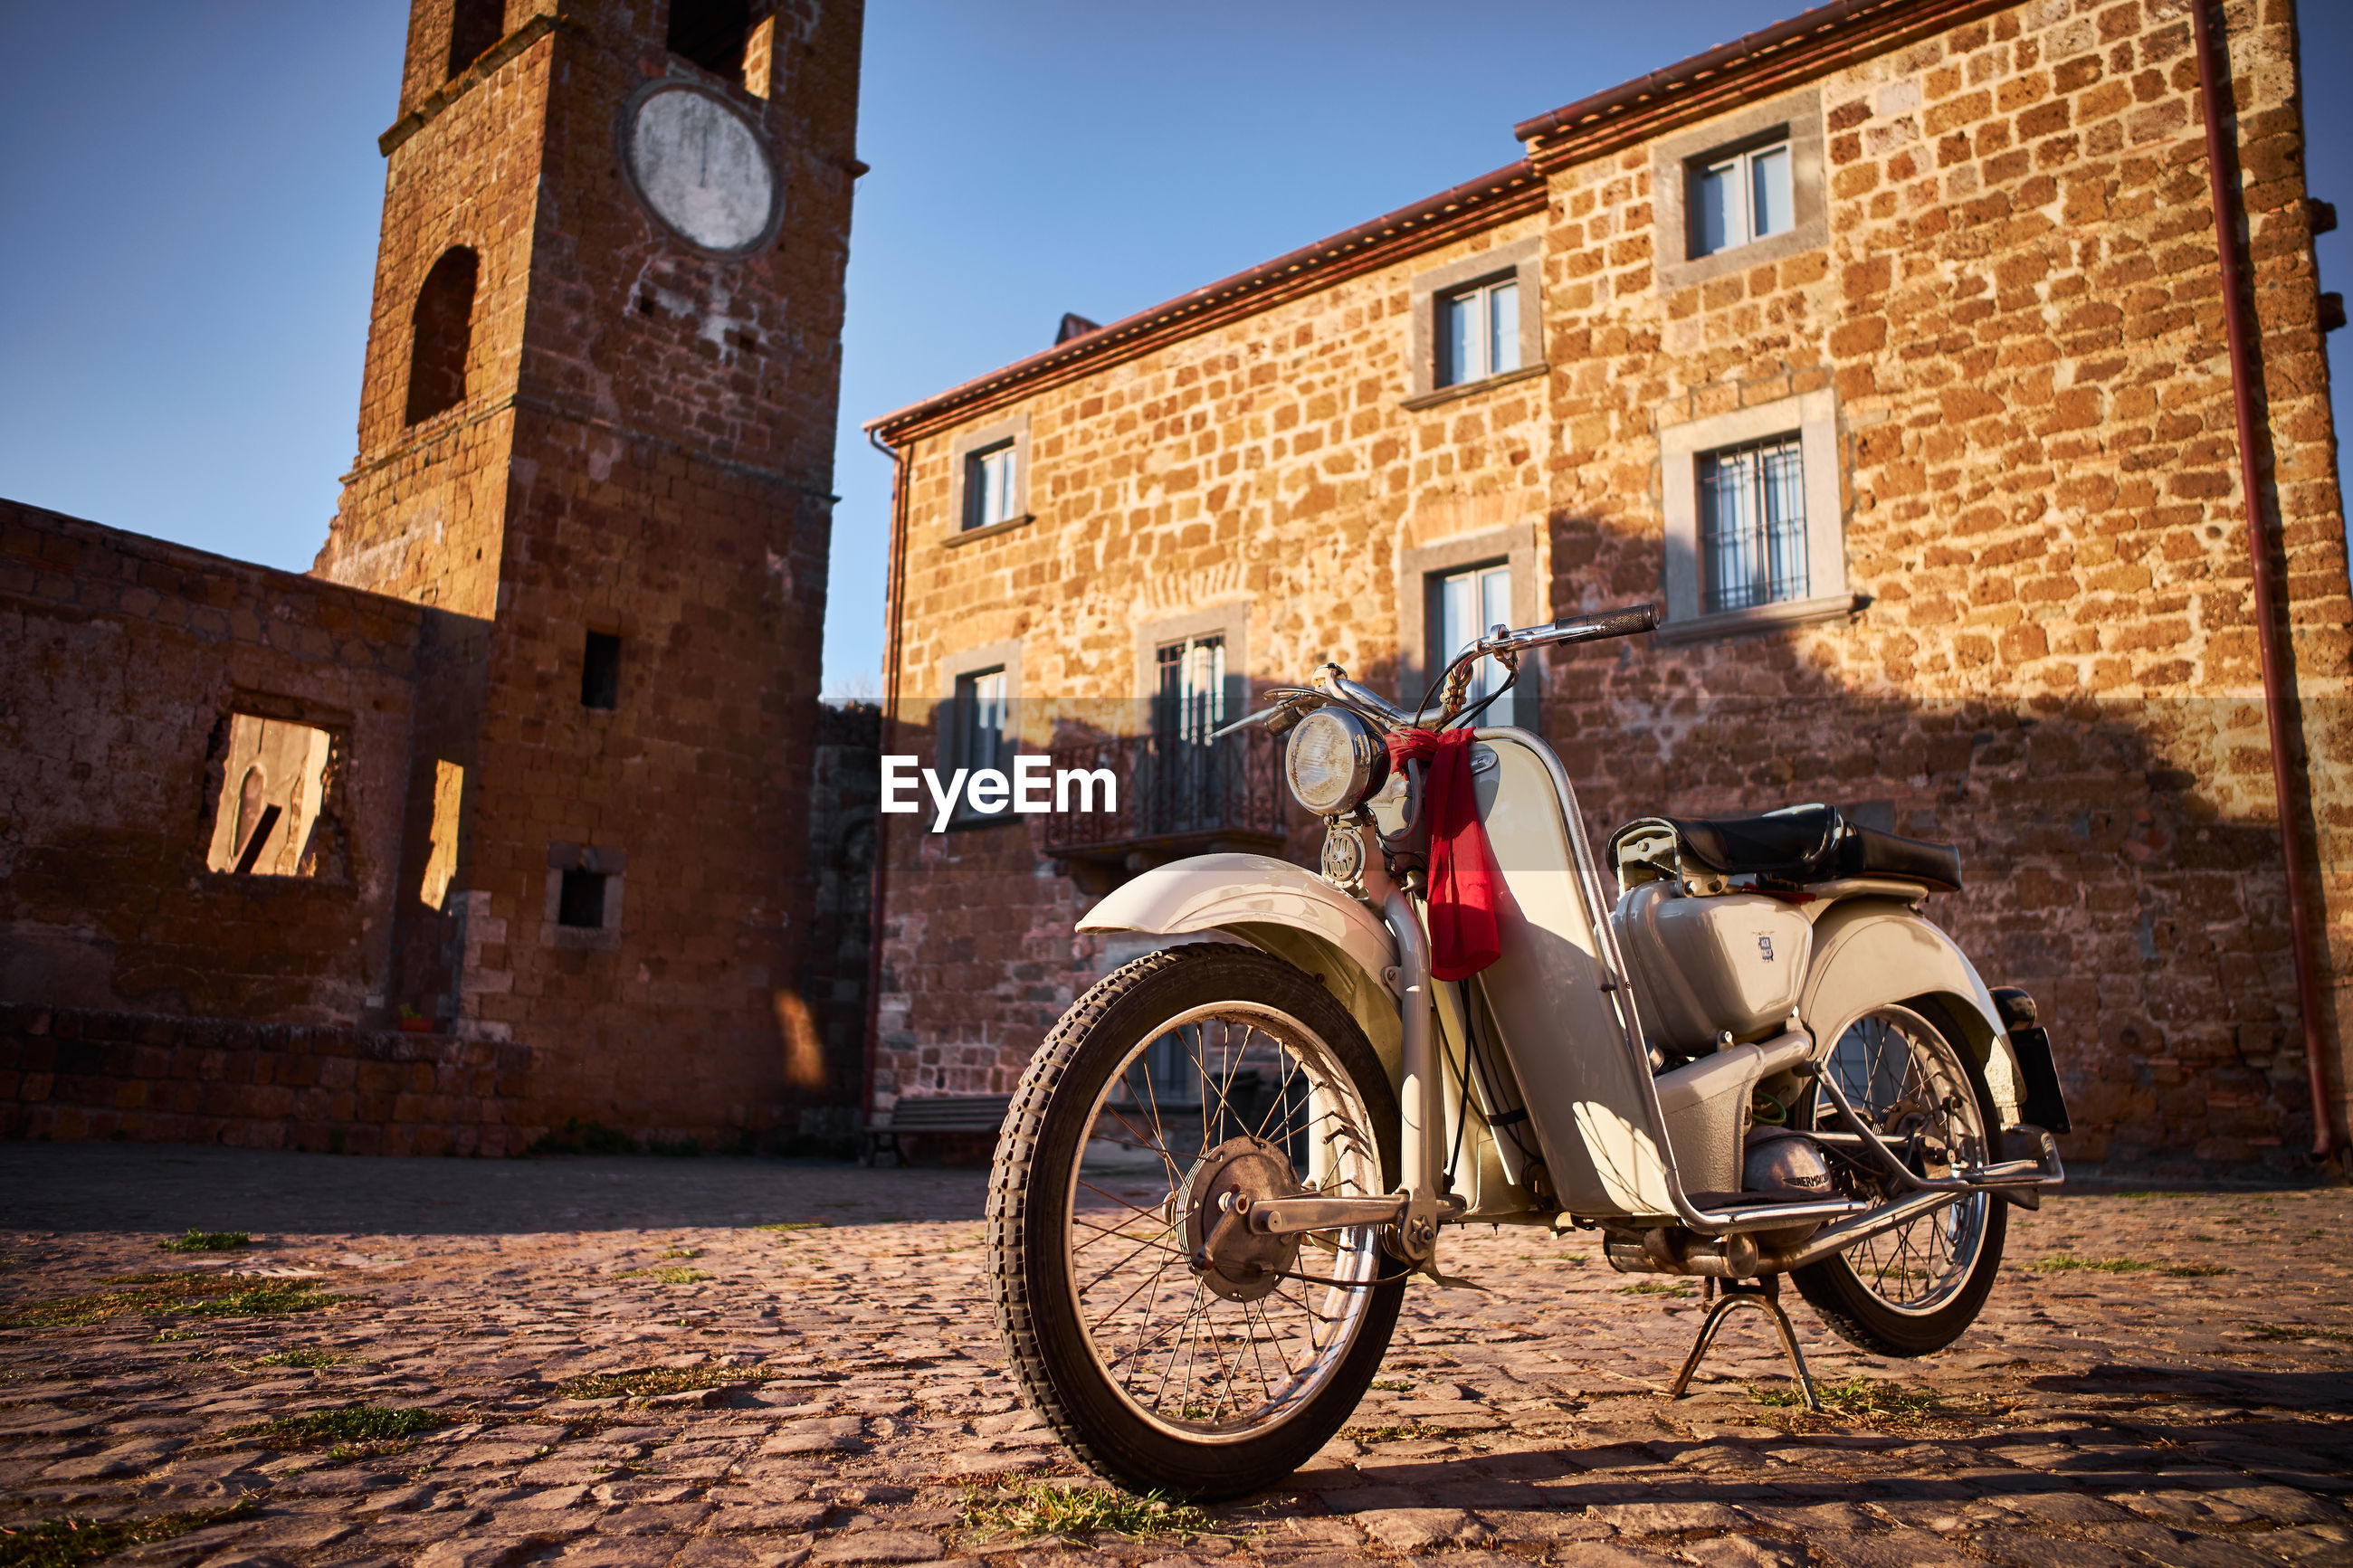 Vintage motorcycle in ghost town celleno in viterbo, sunset on the village